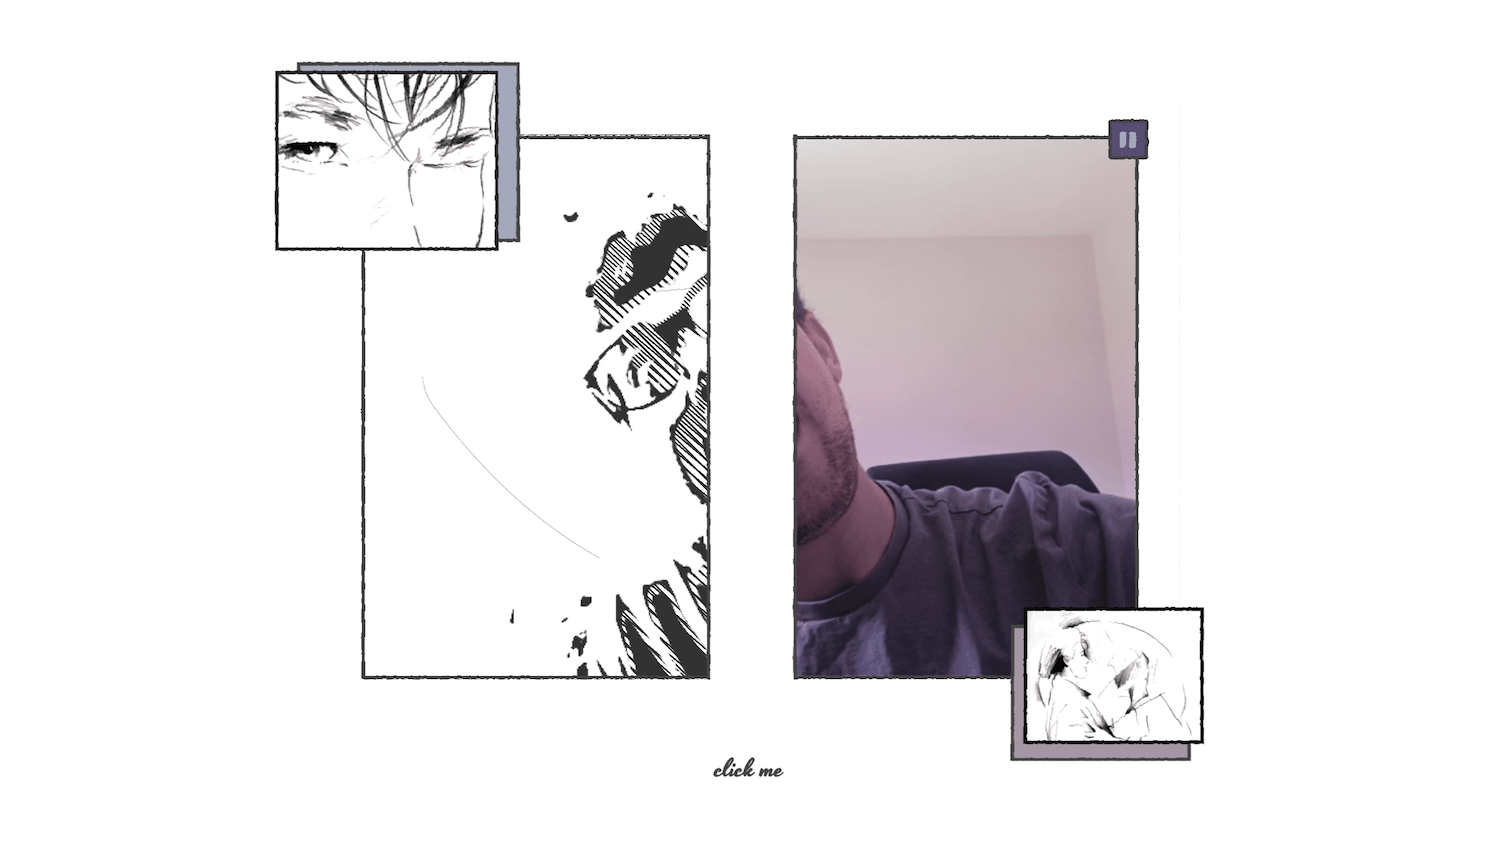 A very sketchy-style UI with the main part being my face, half normal and half sketch